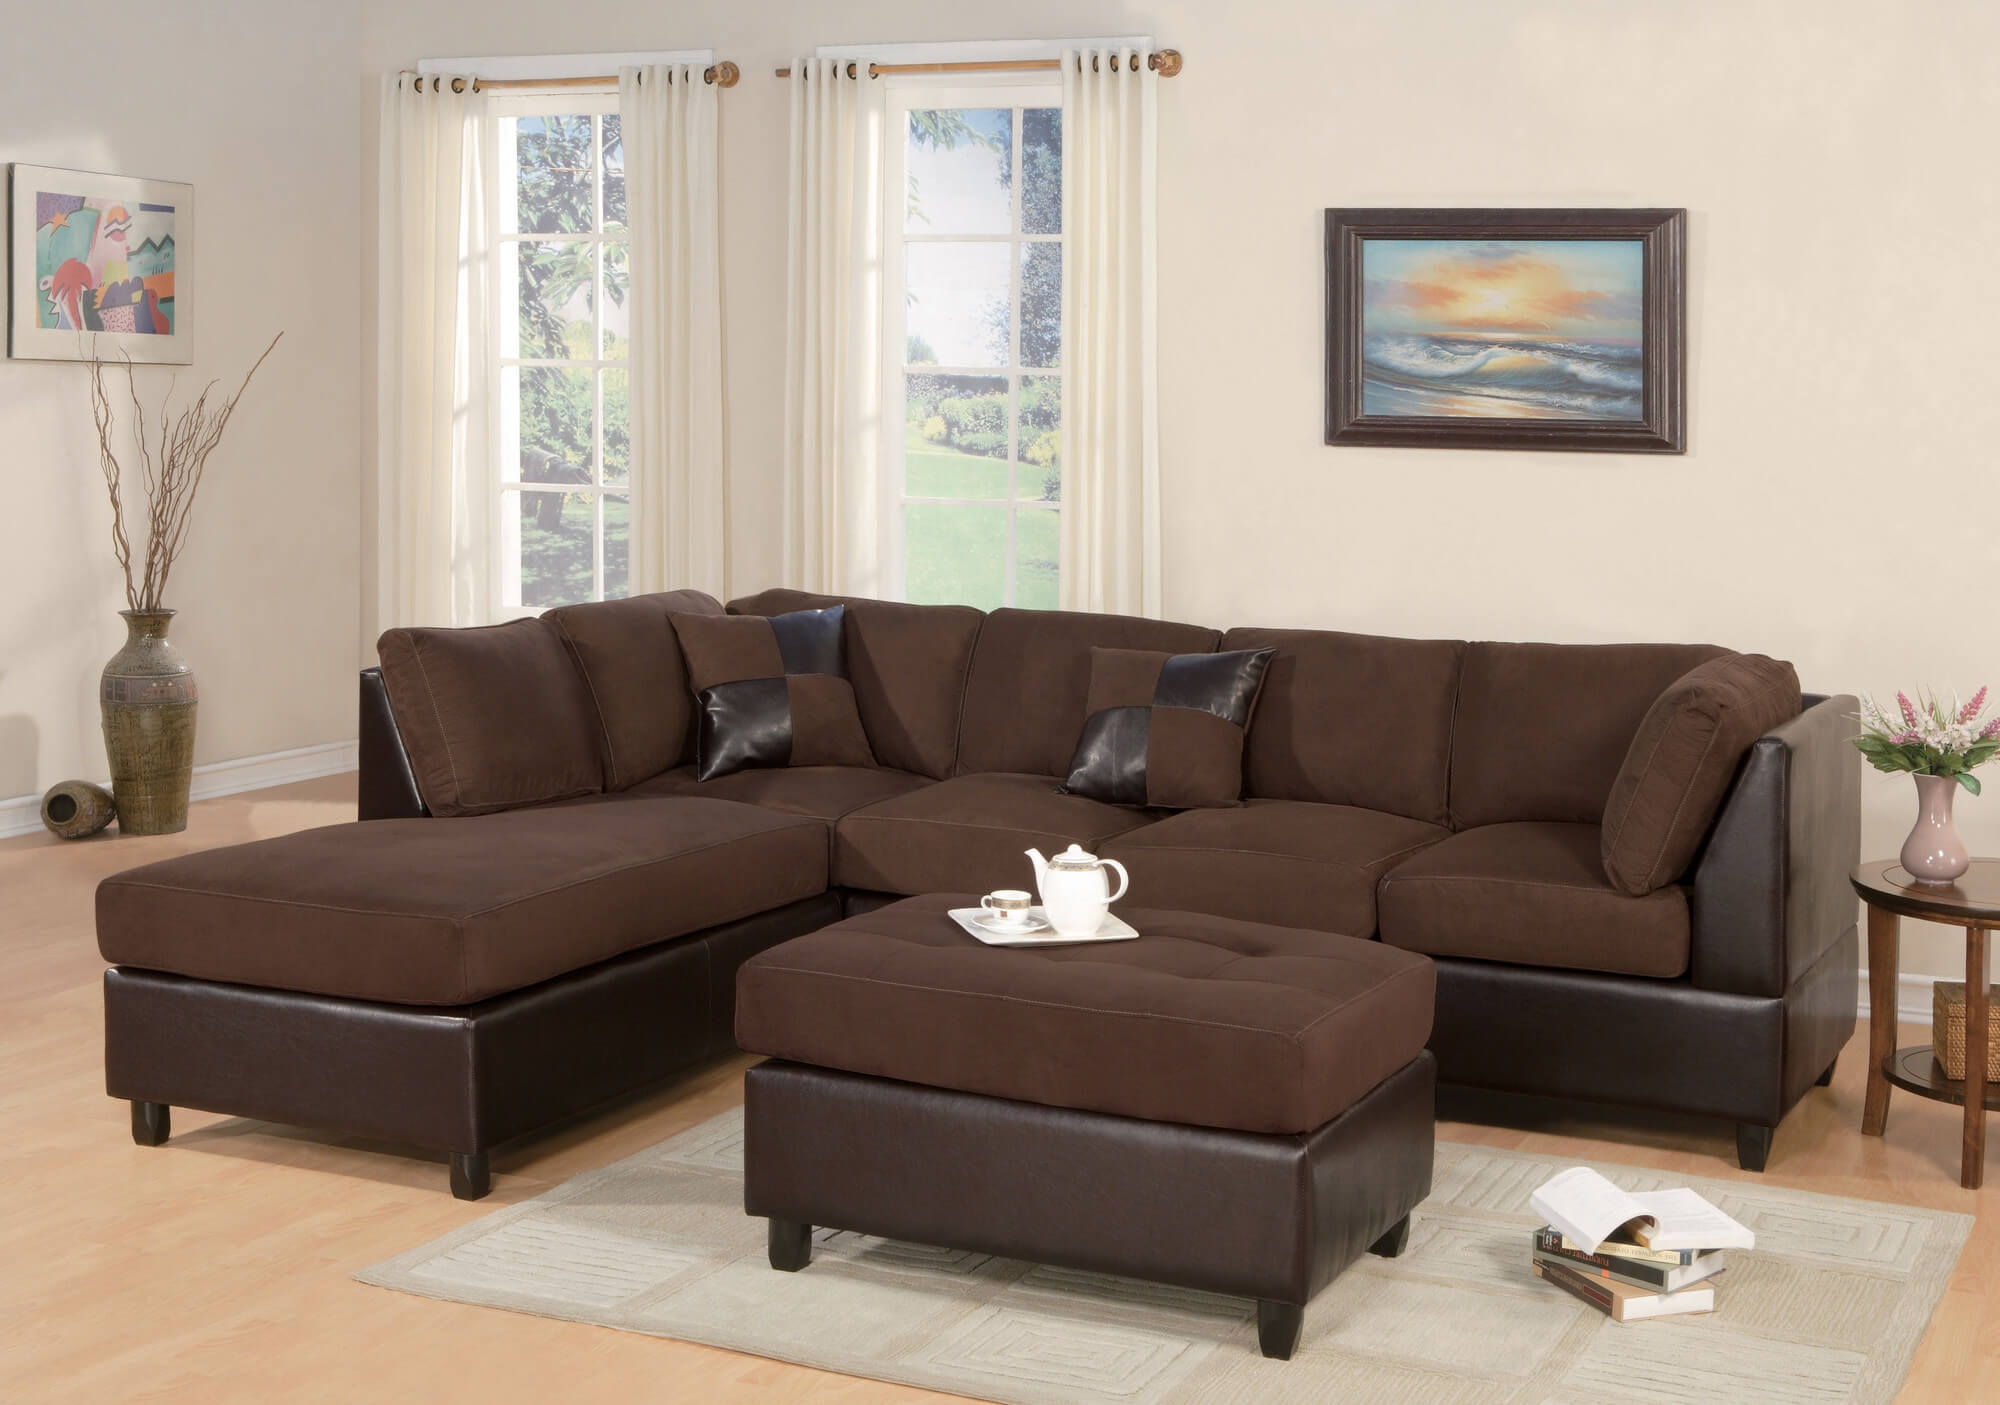 100 Beautiful Sectional Sofas Under 1000 Inside Extra Wide Sectional Sofas (#1 of 12)